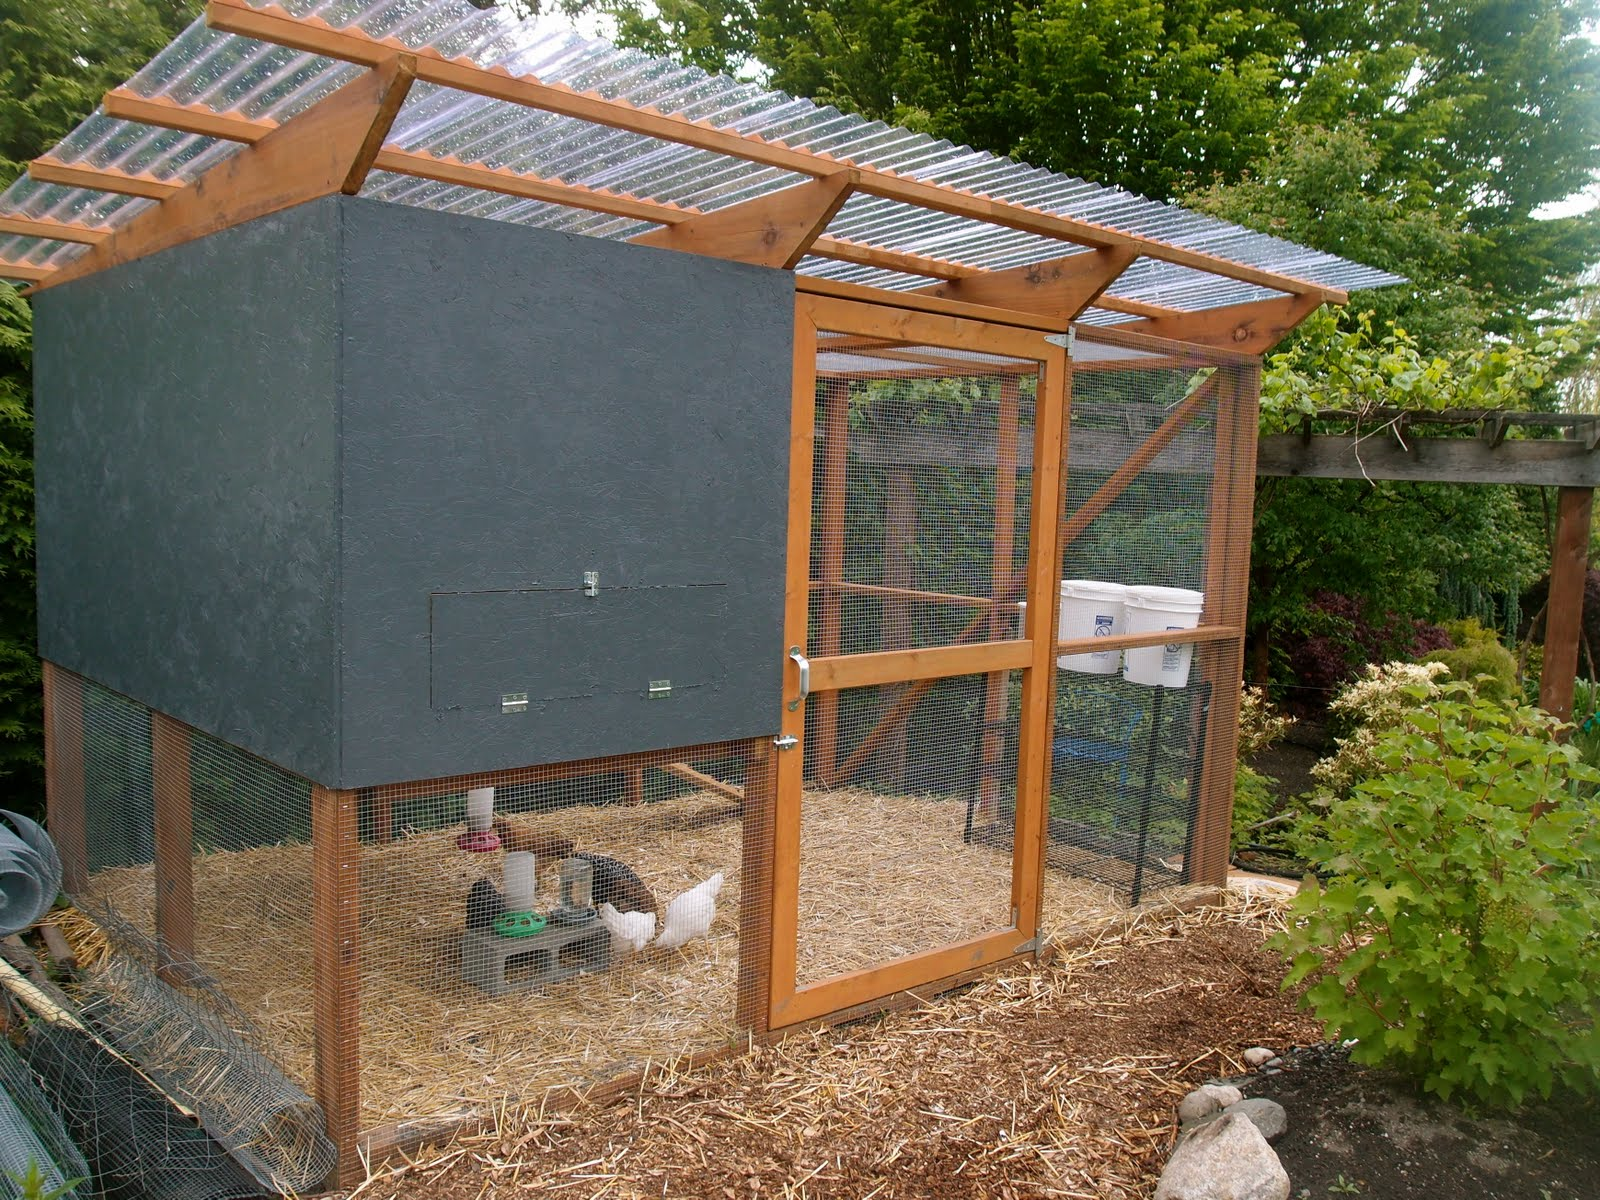 How To Build A Slanted Roof Chicken Coop Info Coop Channel